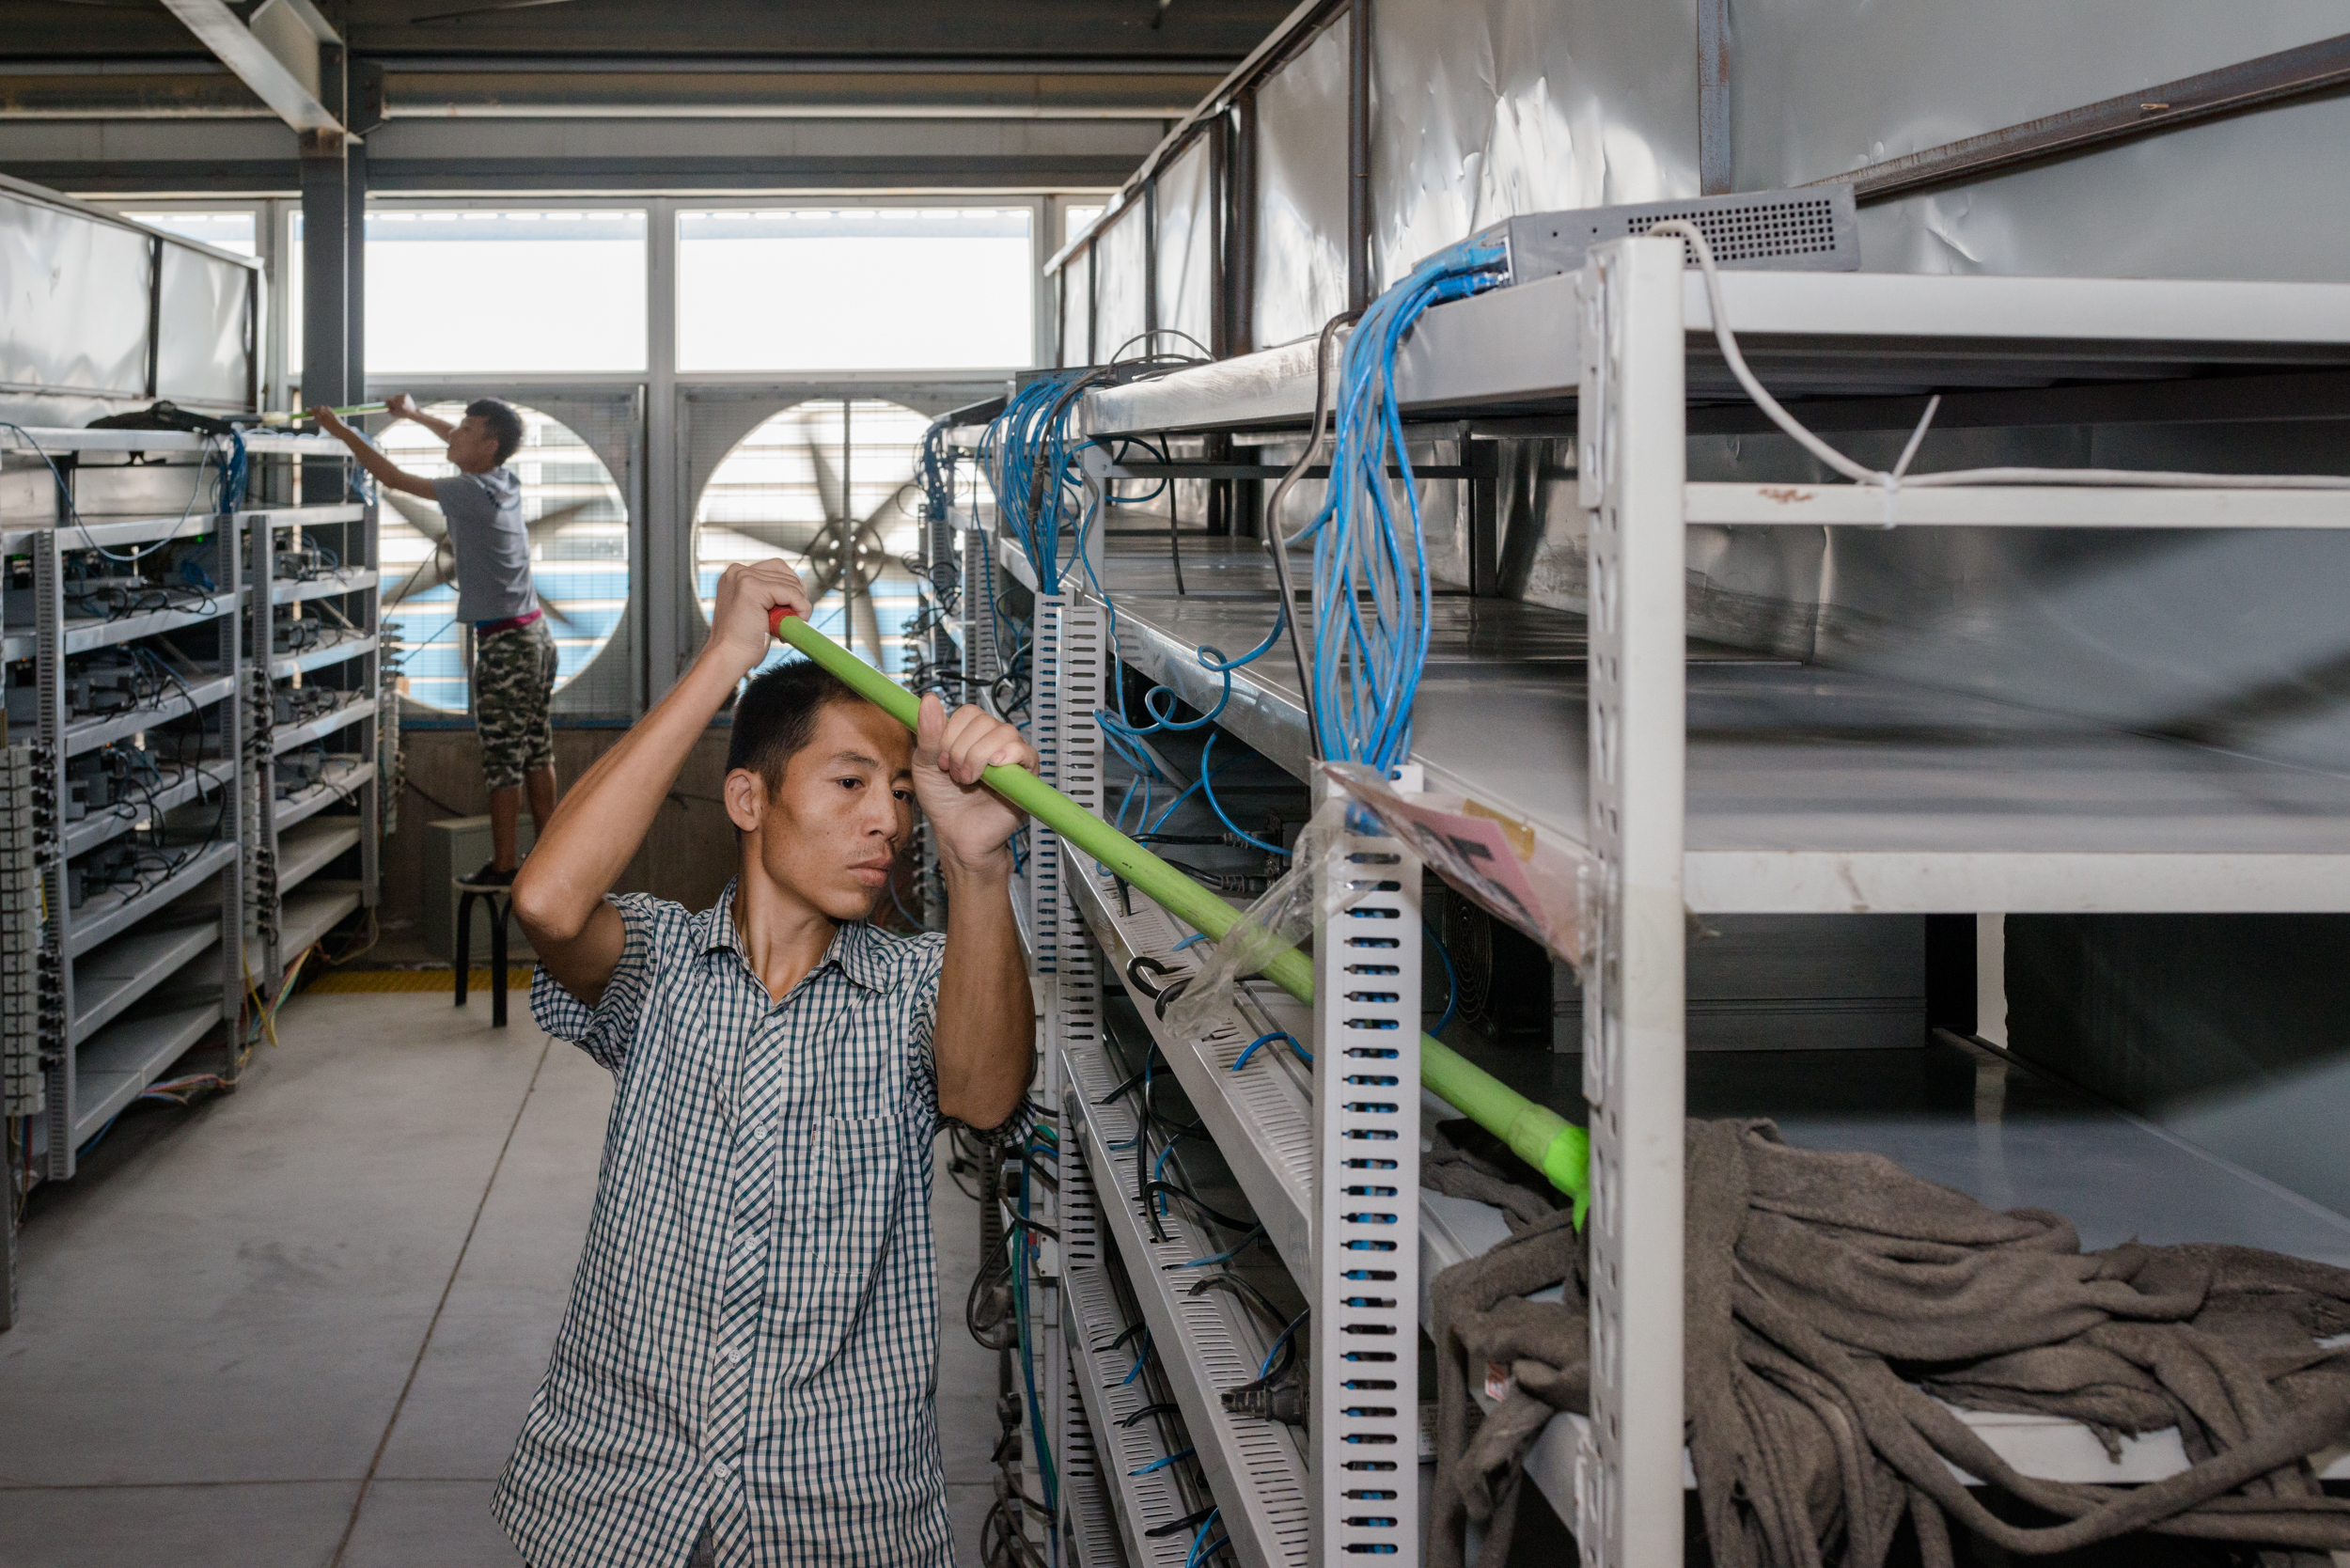 Photos: China has one of world's largest bitcoin mines ...